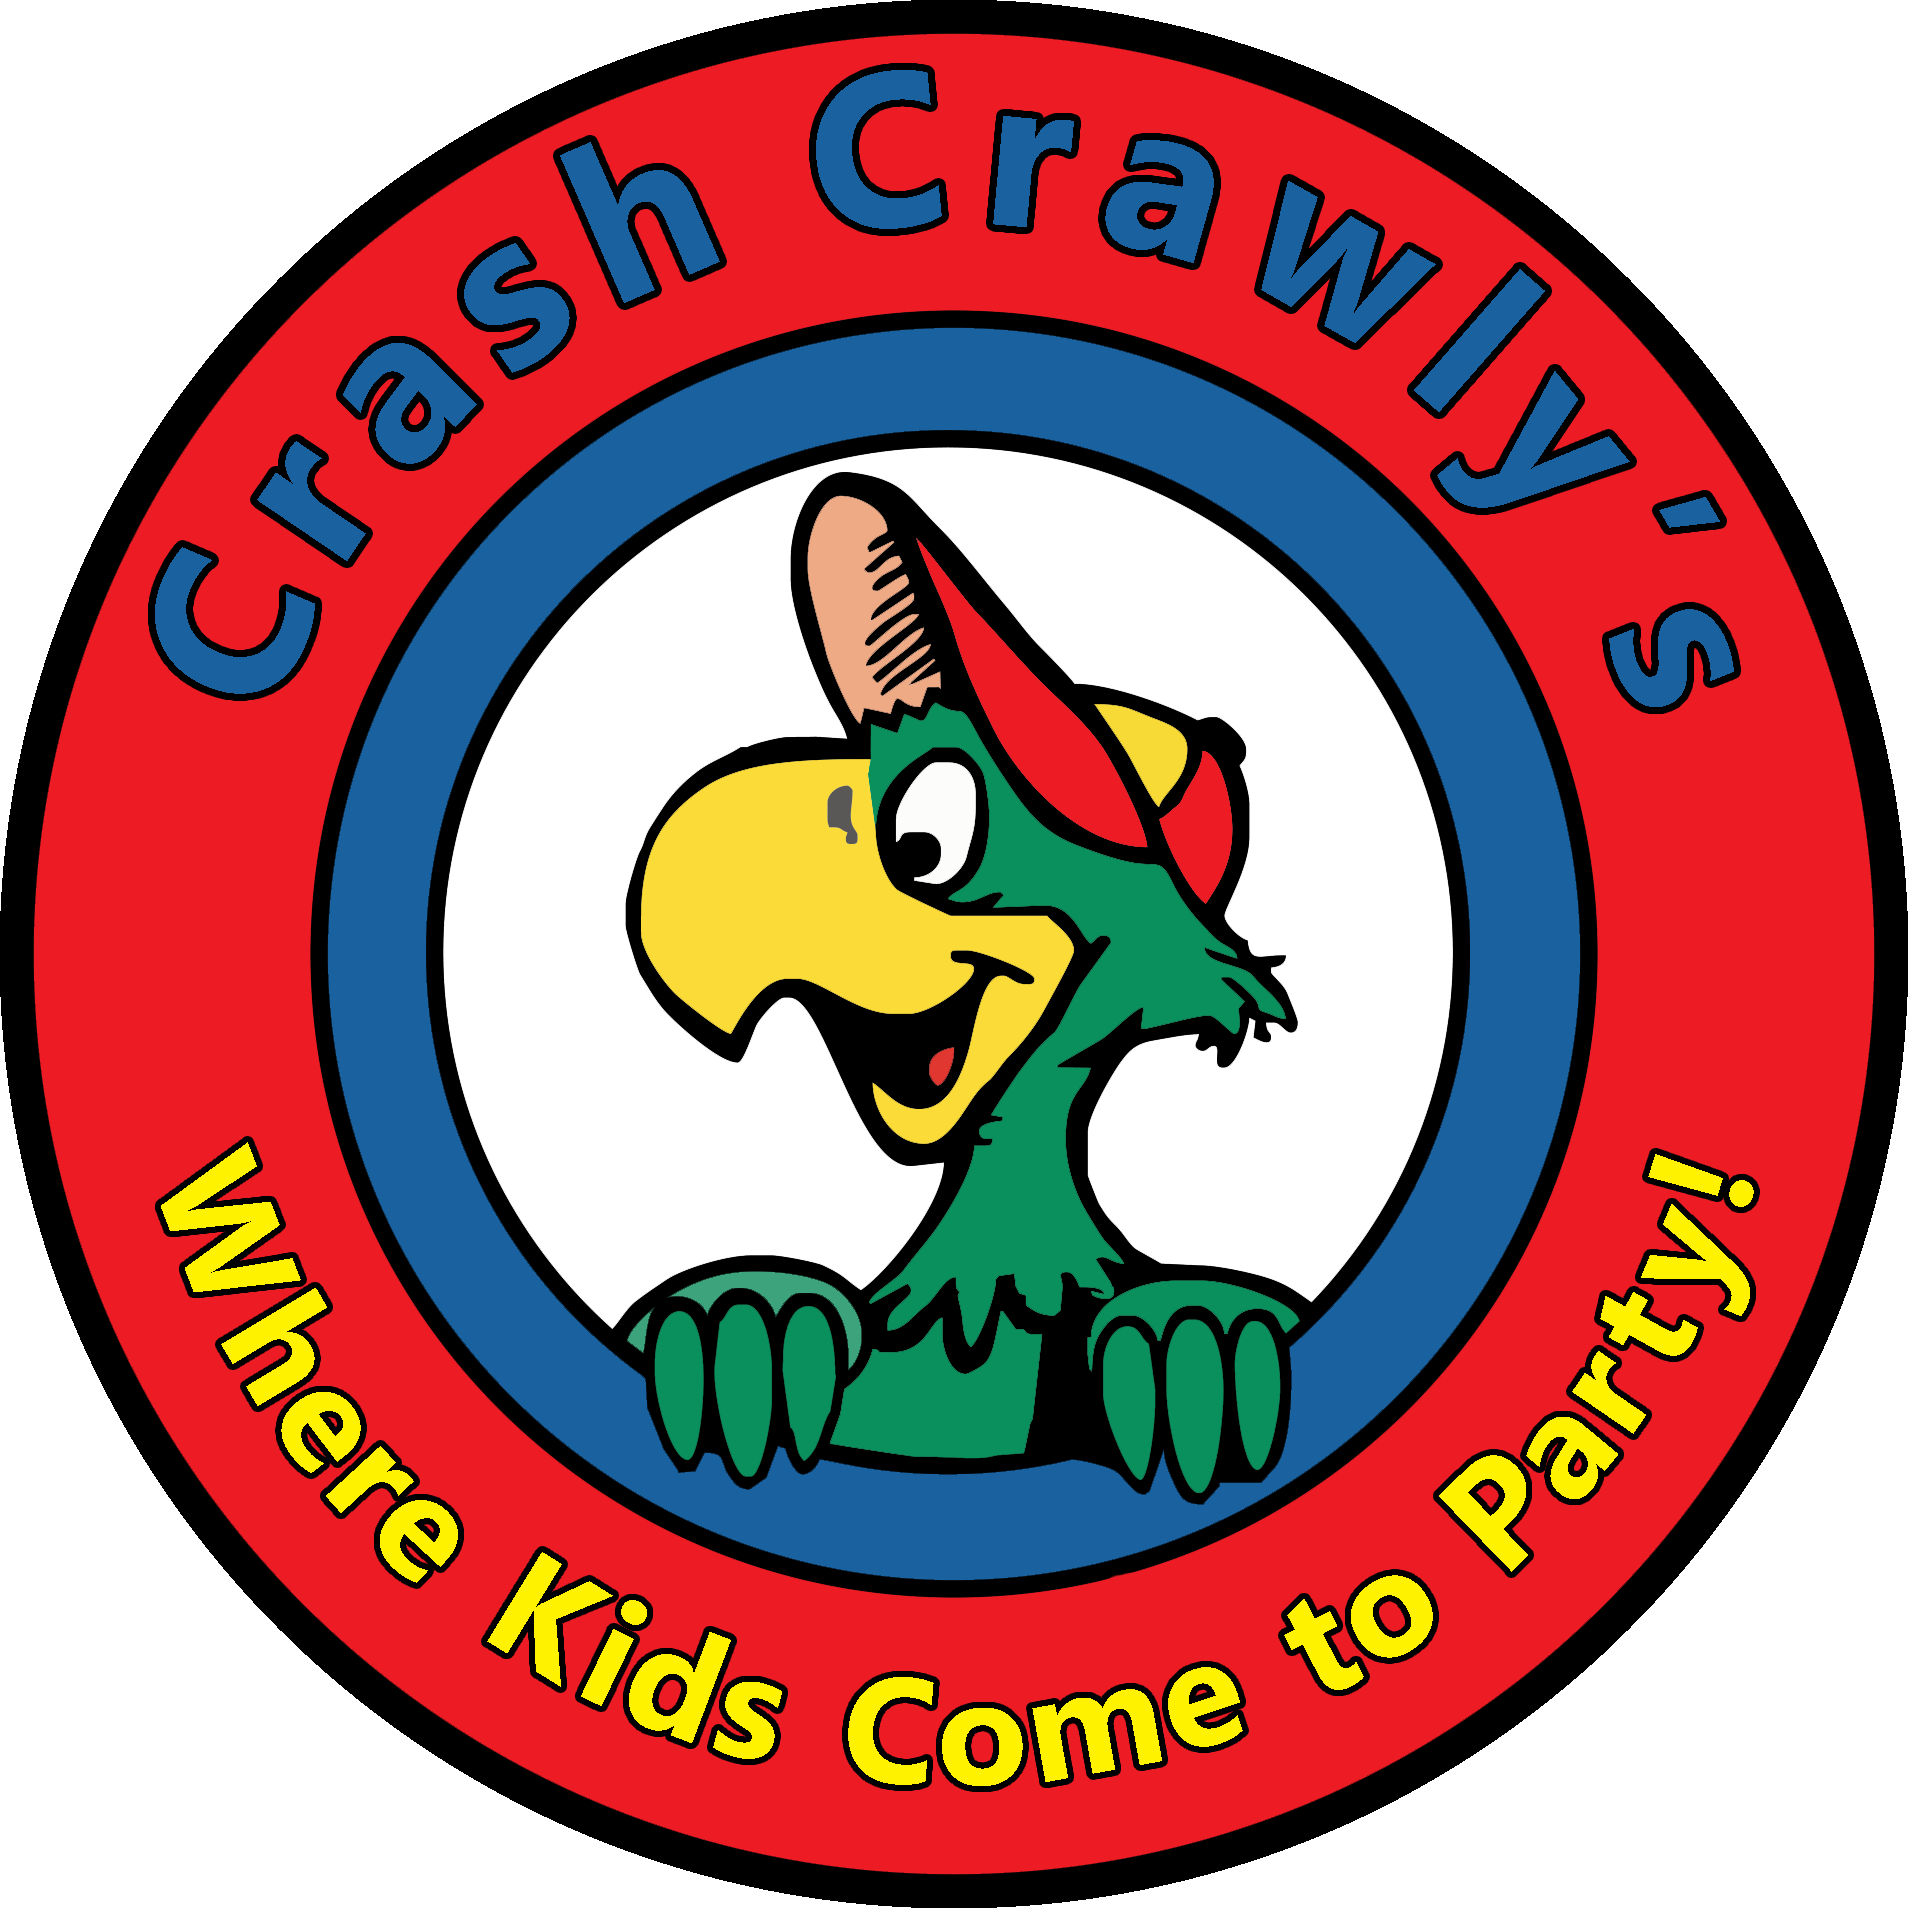 Birthday Party Packages Crash CrawlysCrash Crawlys